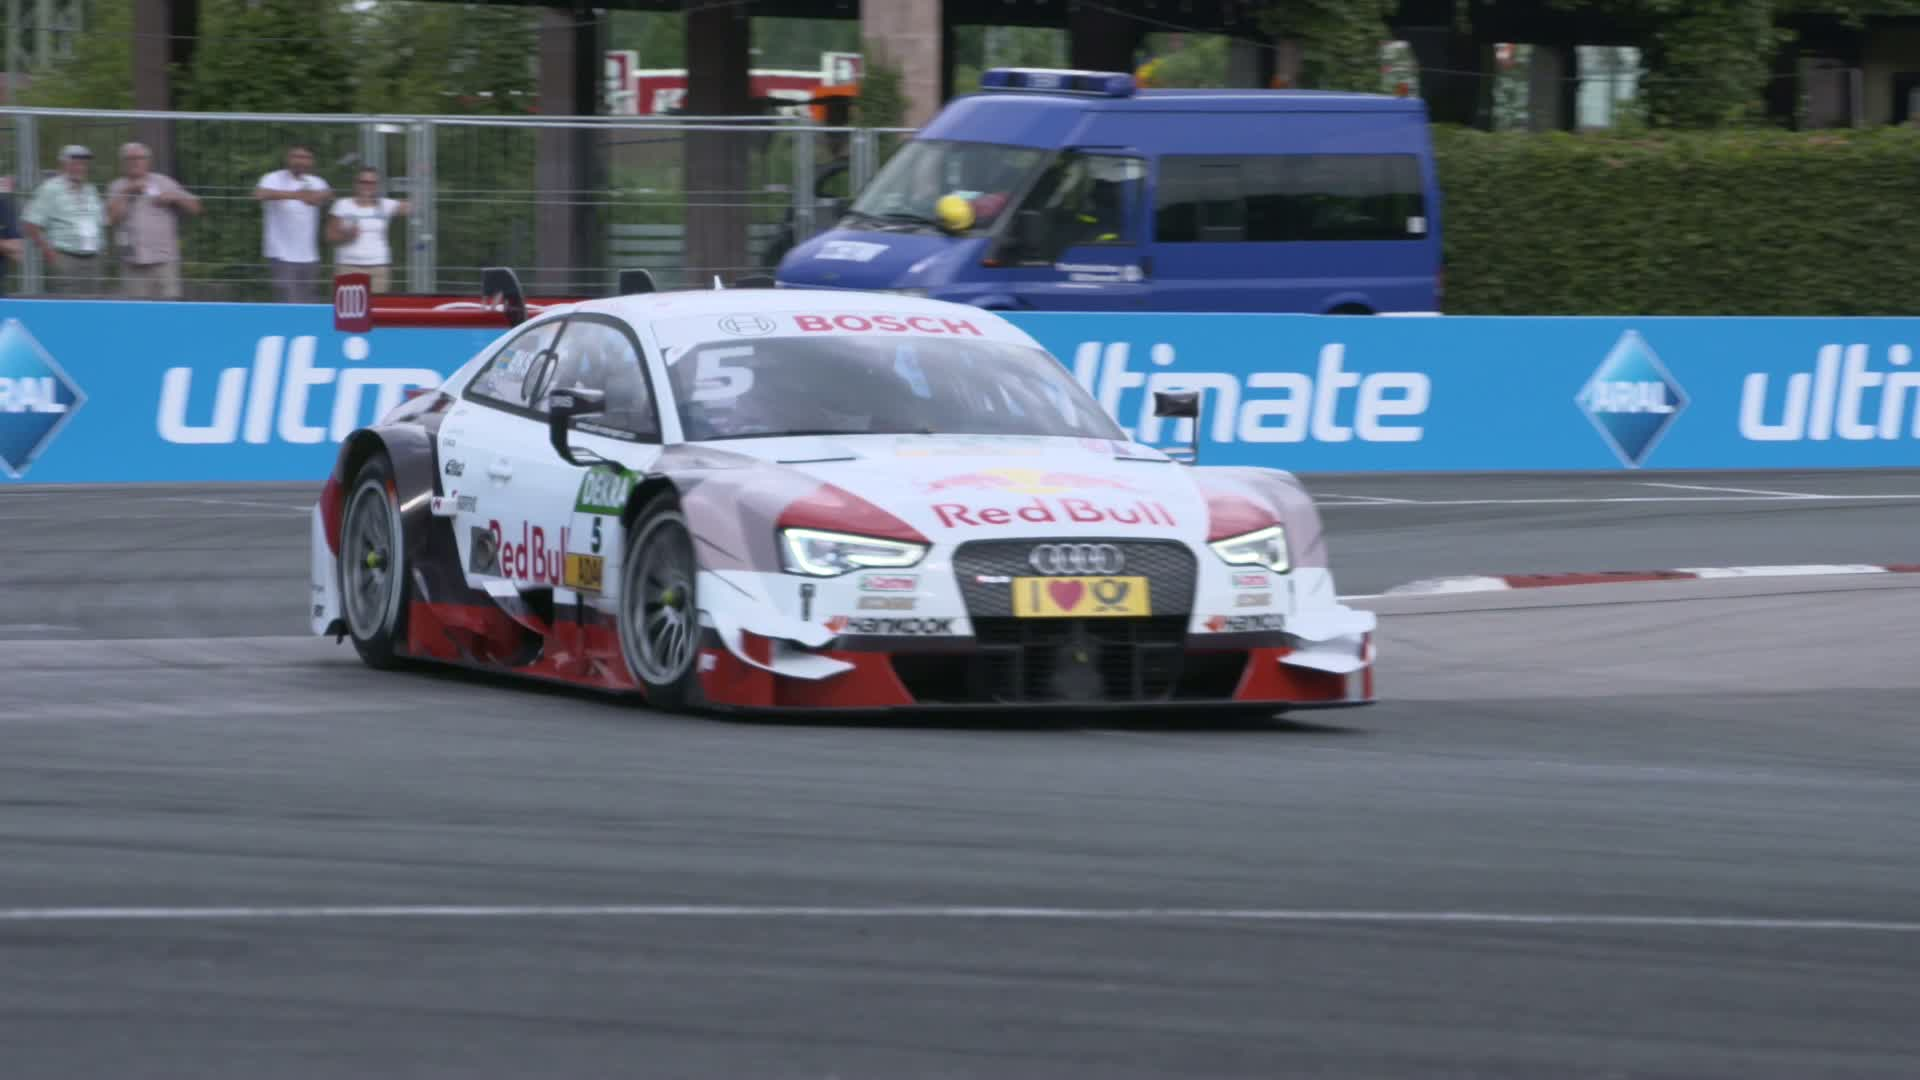 60 Seconds of Audi Sport 45/2015 - DTM Norisring, 25 years later